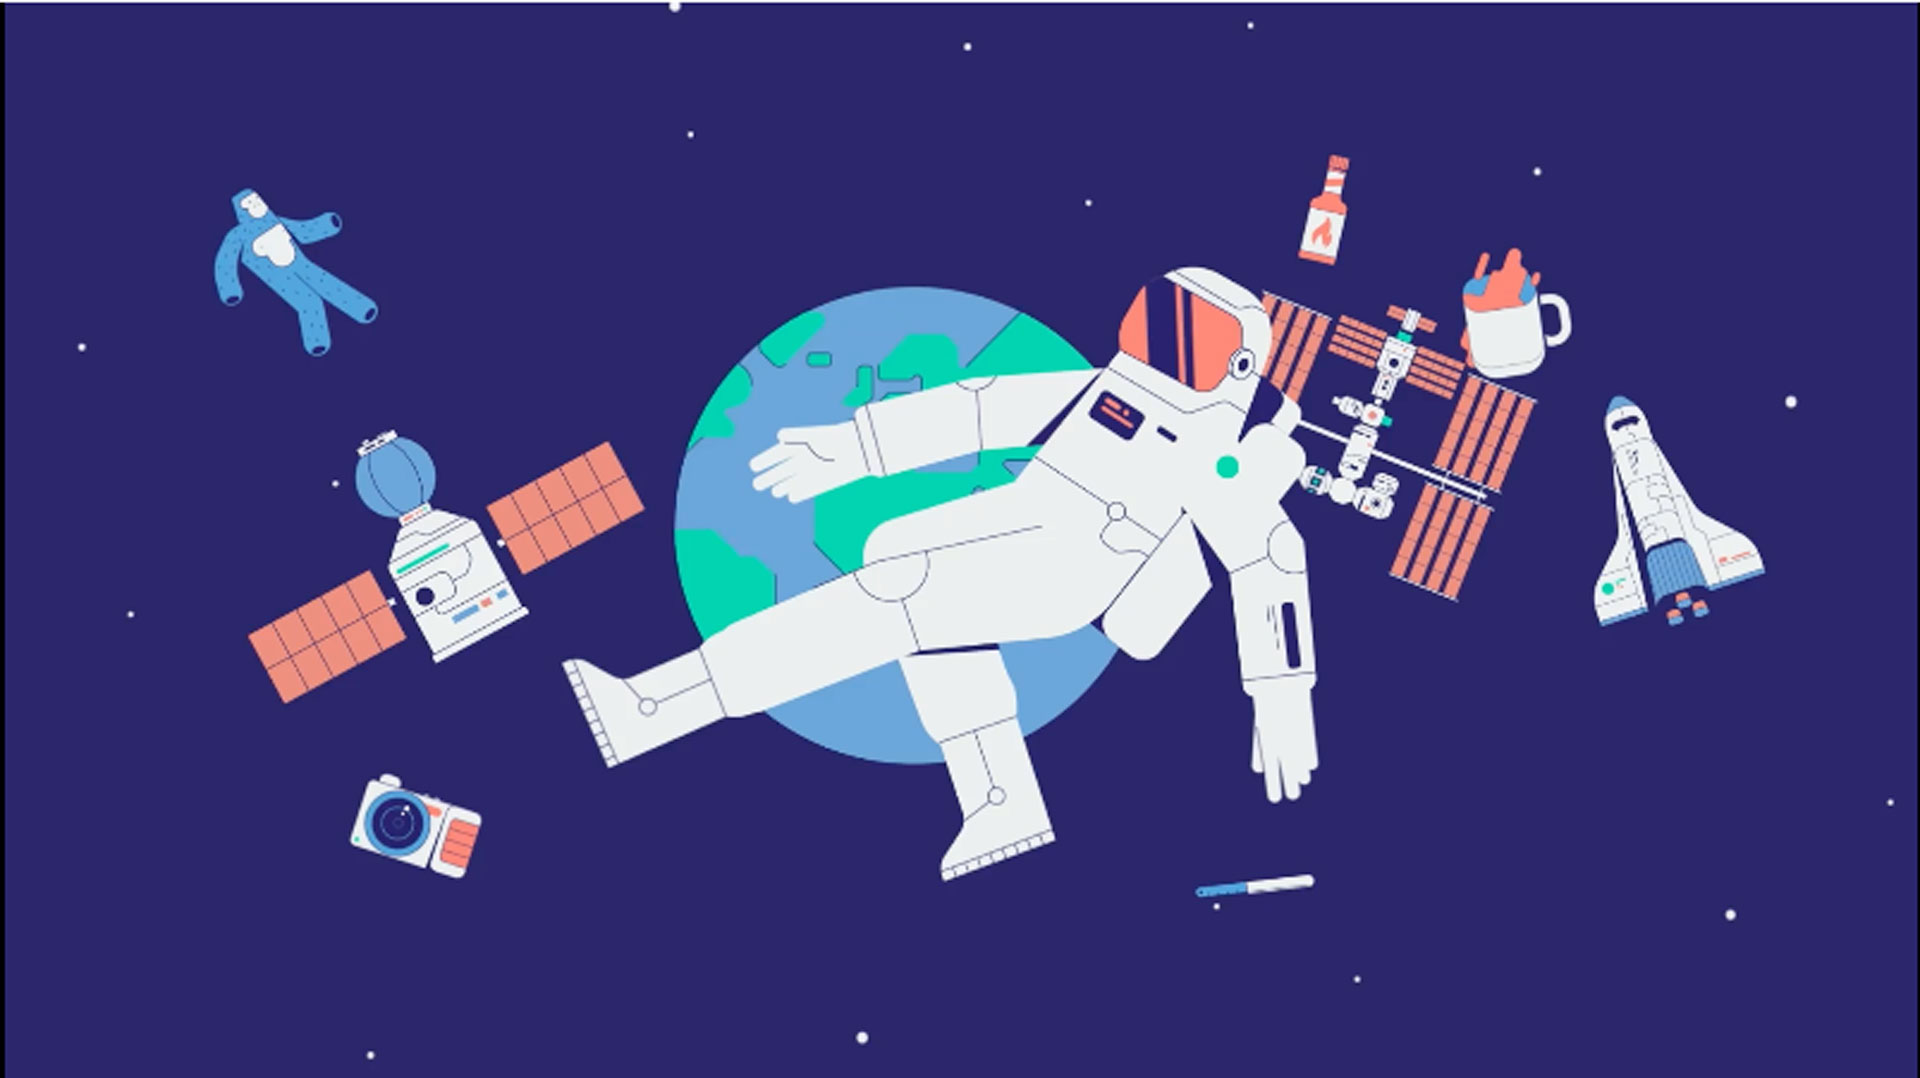 Life in space: Stories from 50 astronauts in their own words.